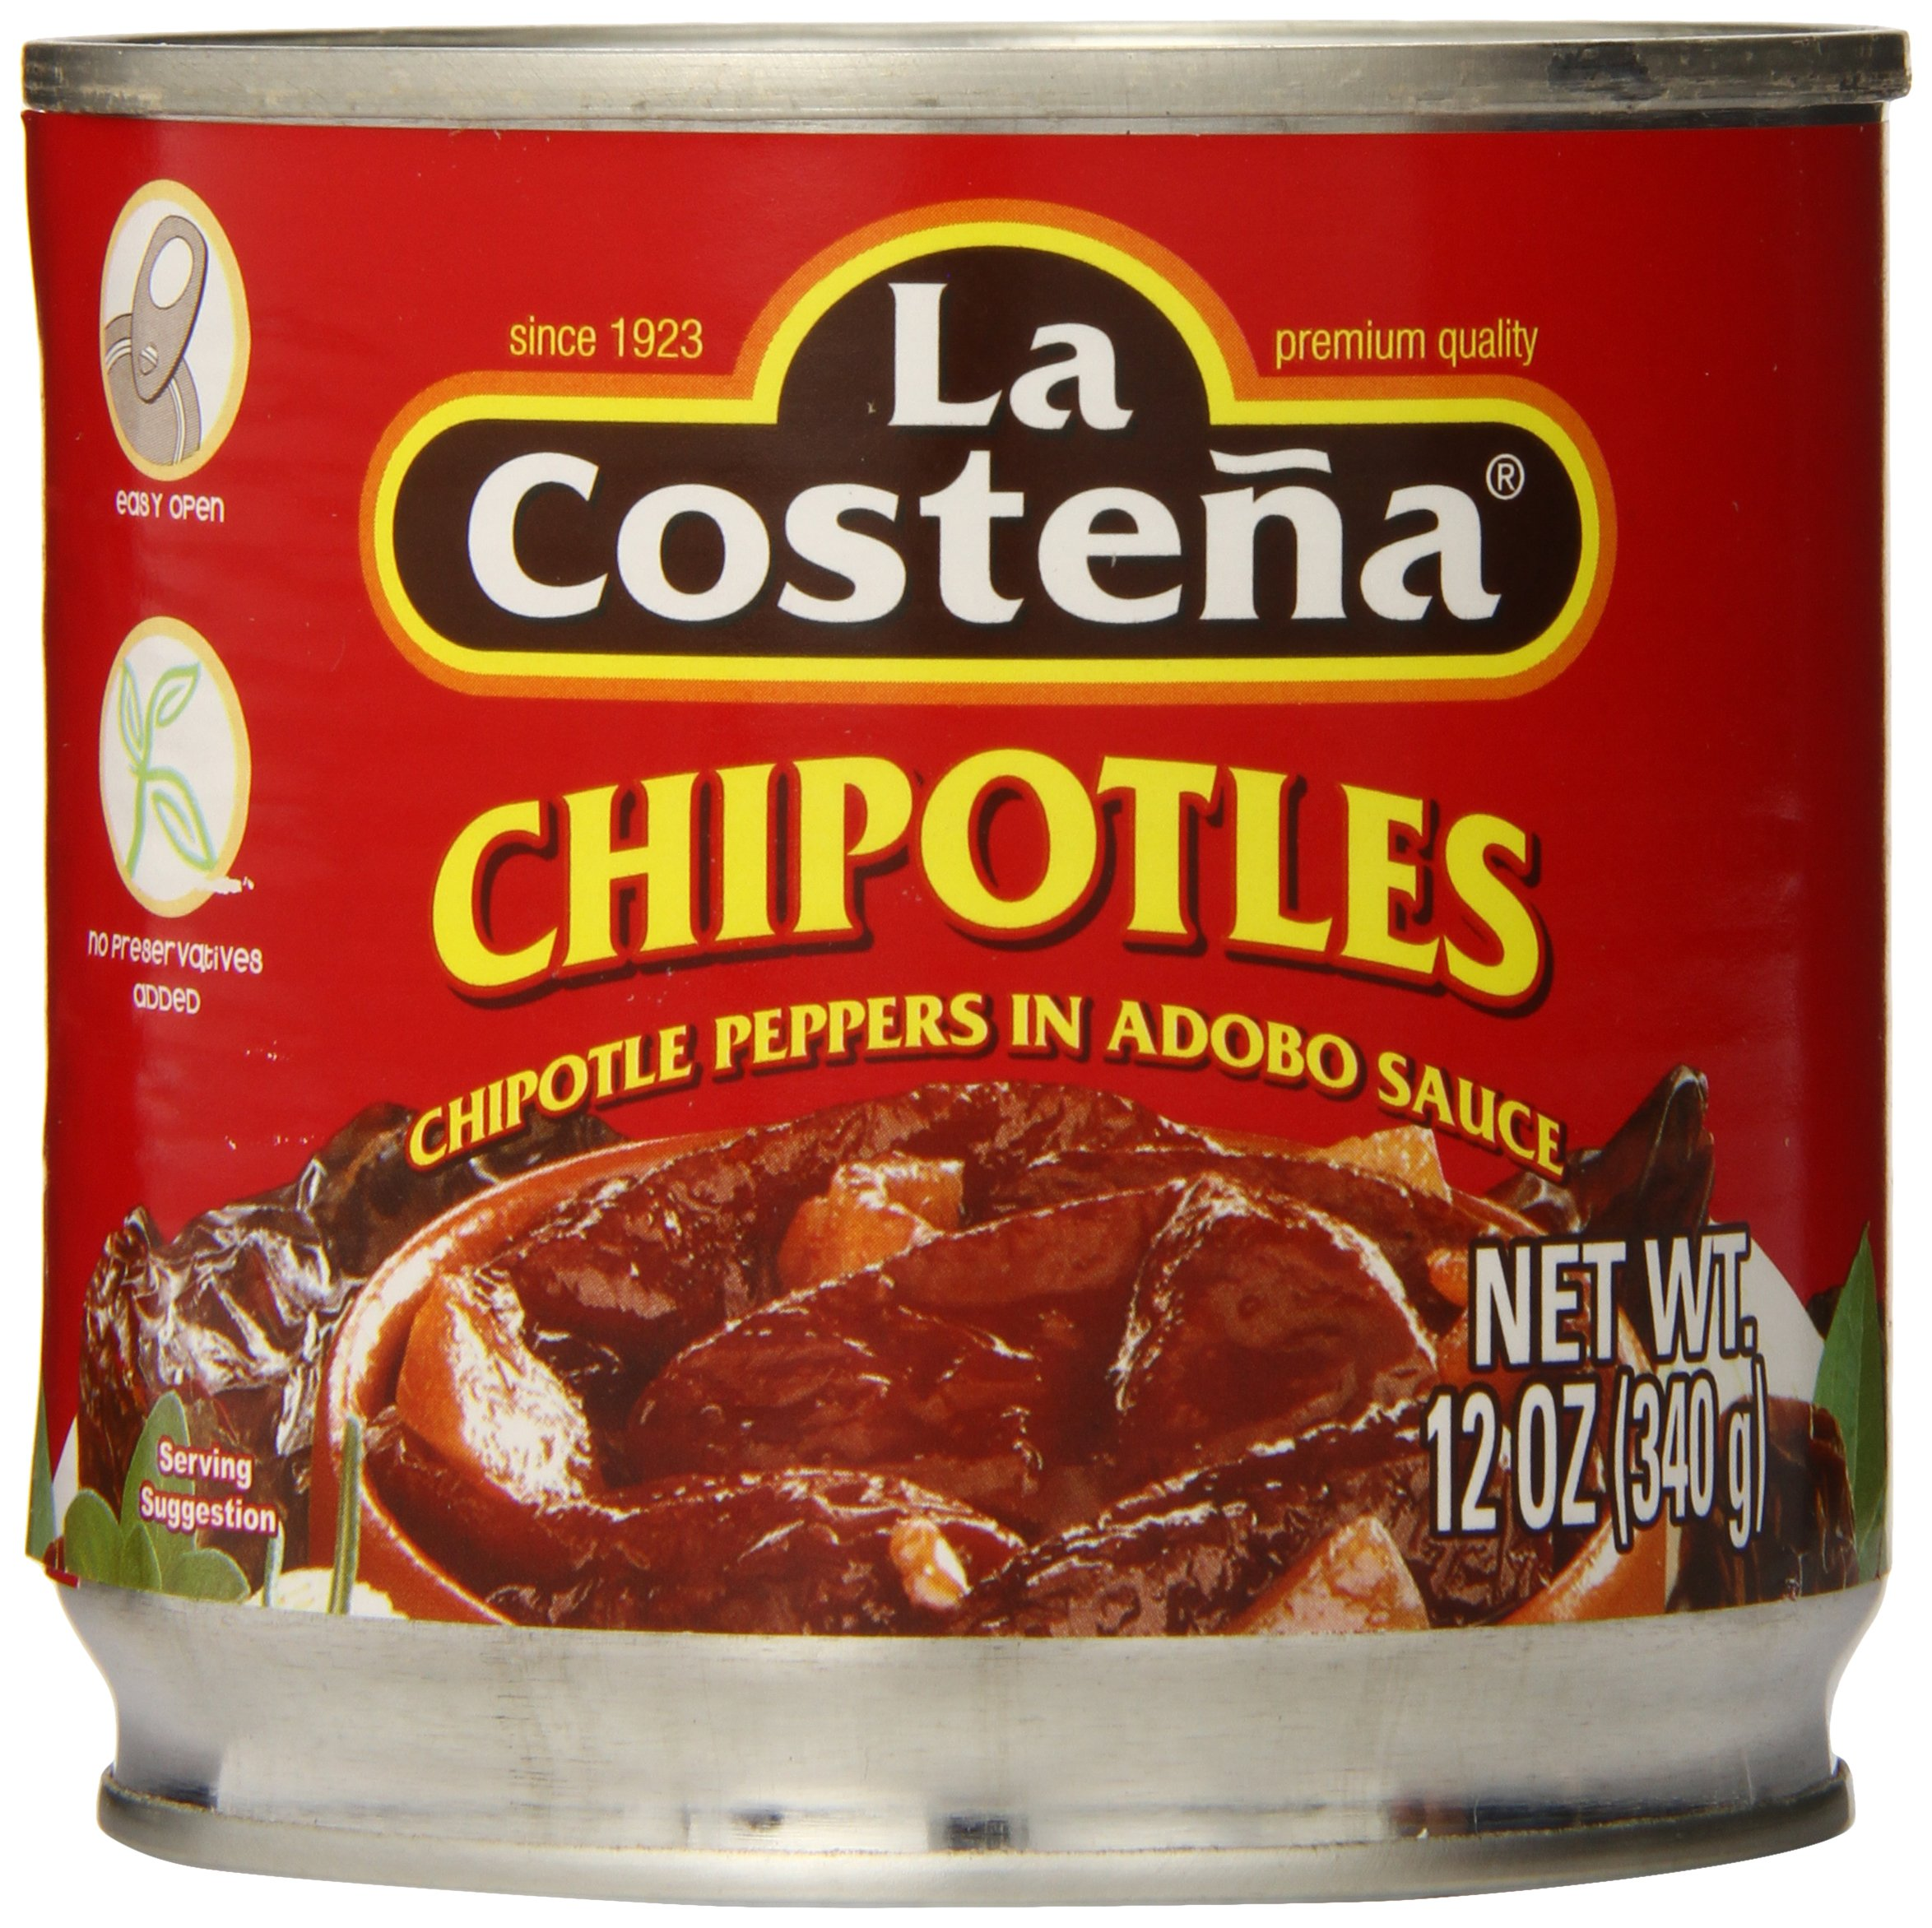 La Costena Chipotle Peppers, 12 Ounce (Pack of 12)